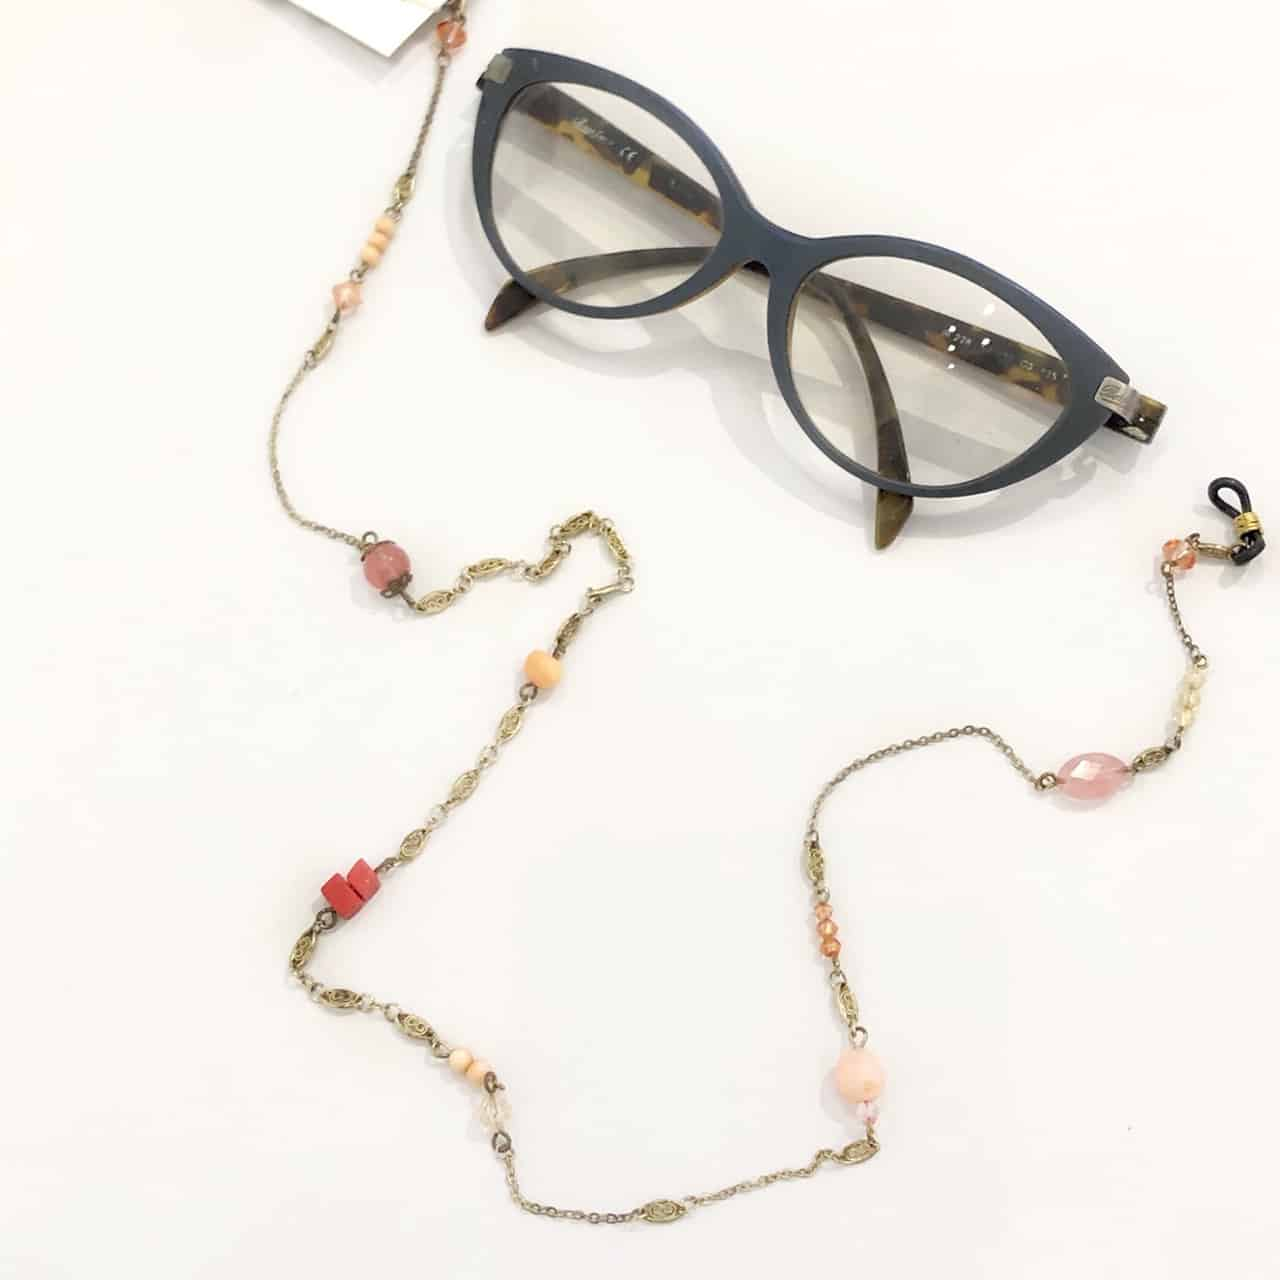 glasses-chain-with-repurposed-vintage-beads-by-my-vintage-obsession-198276-myvintageobsession2020